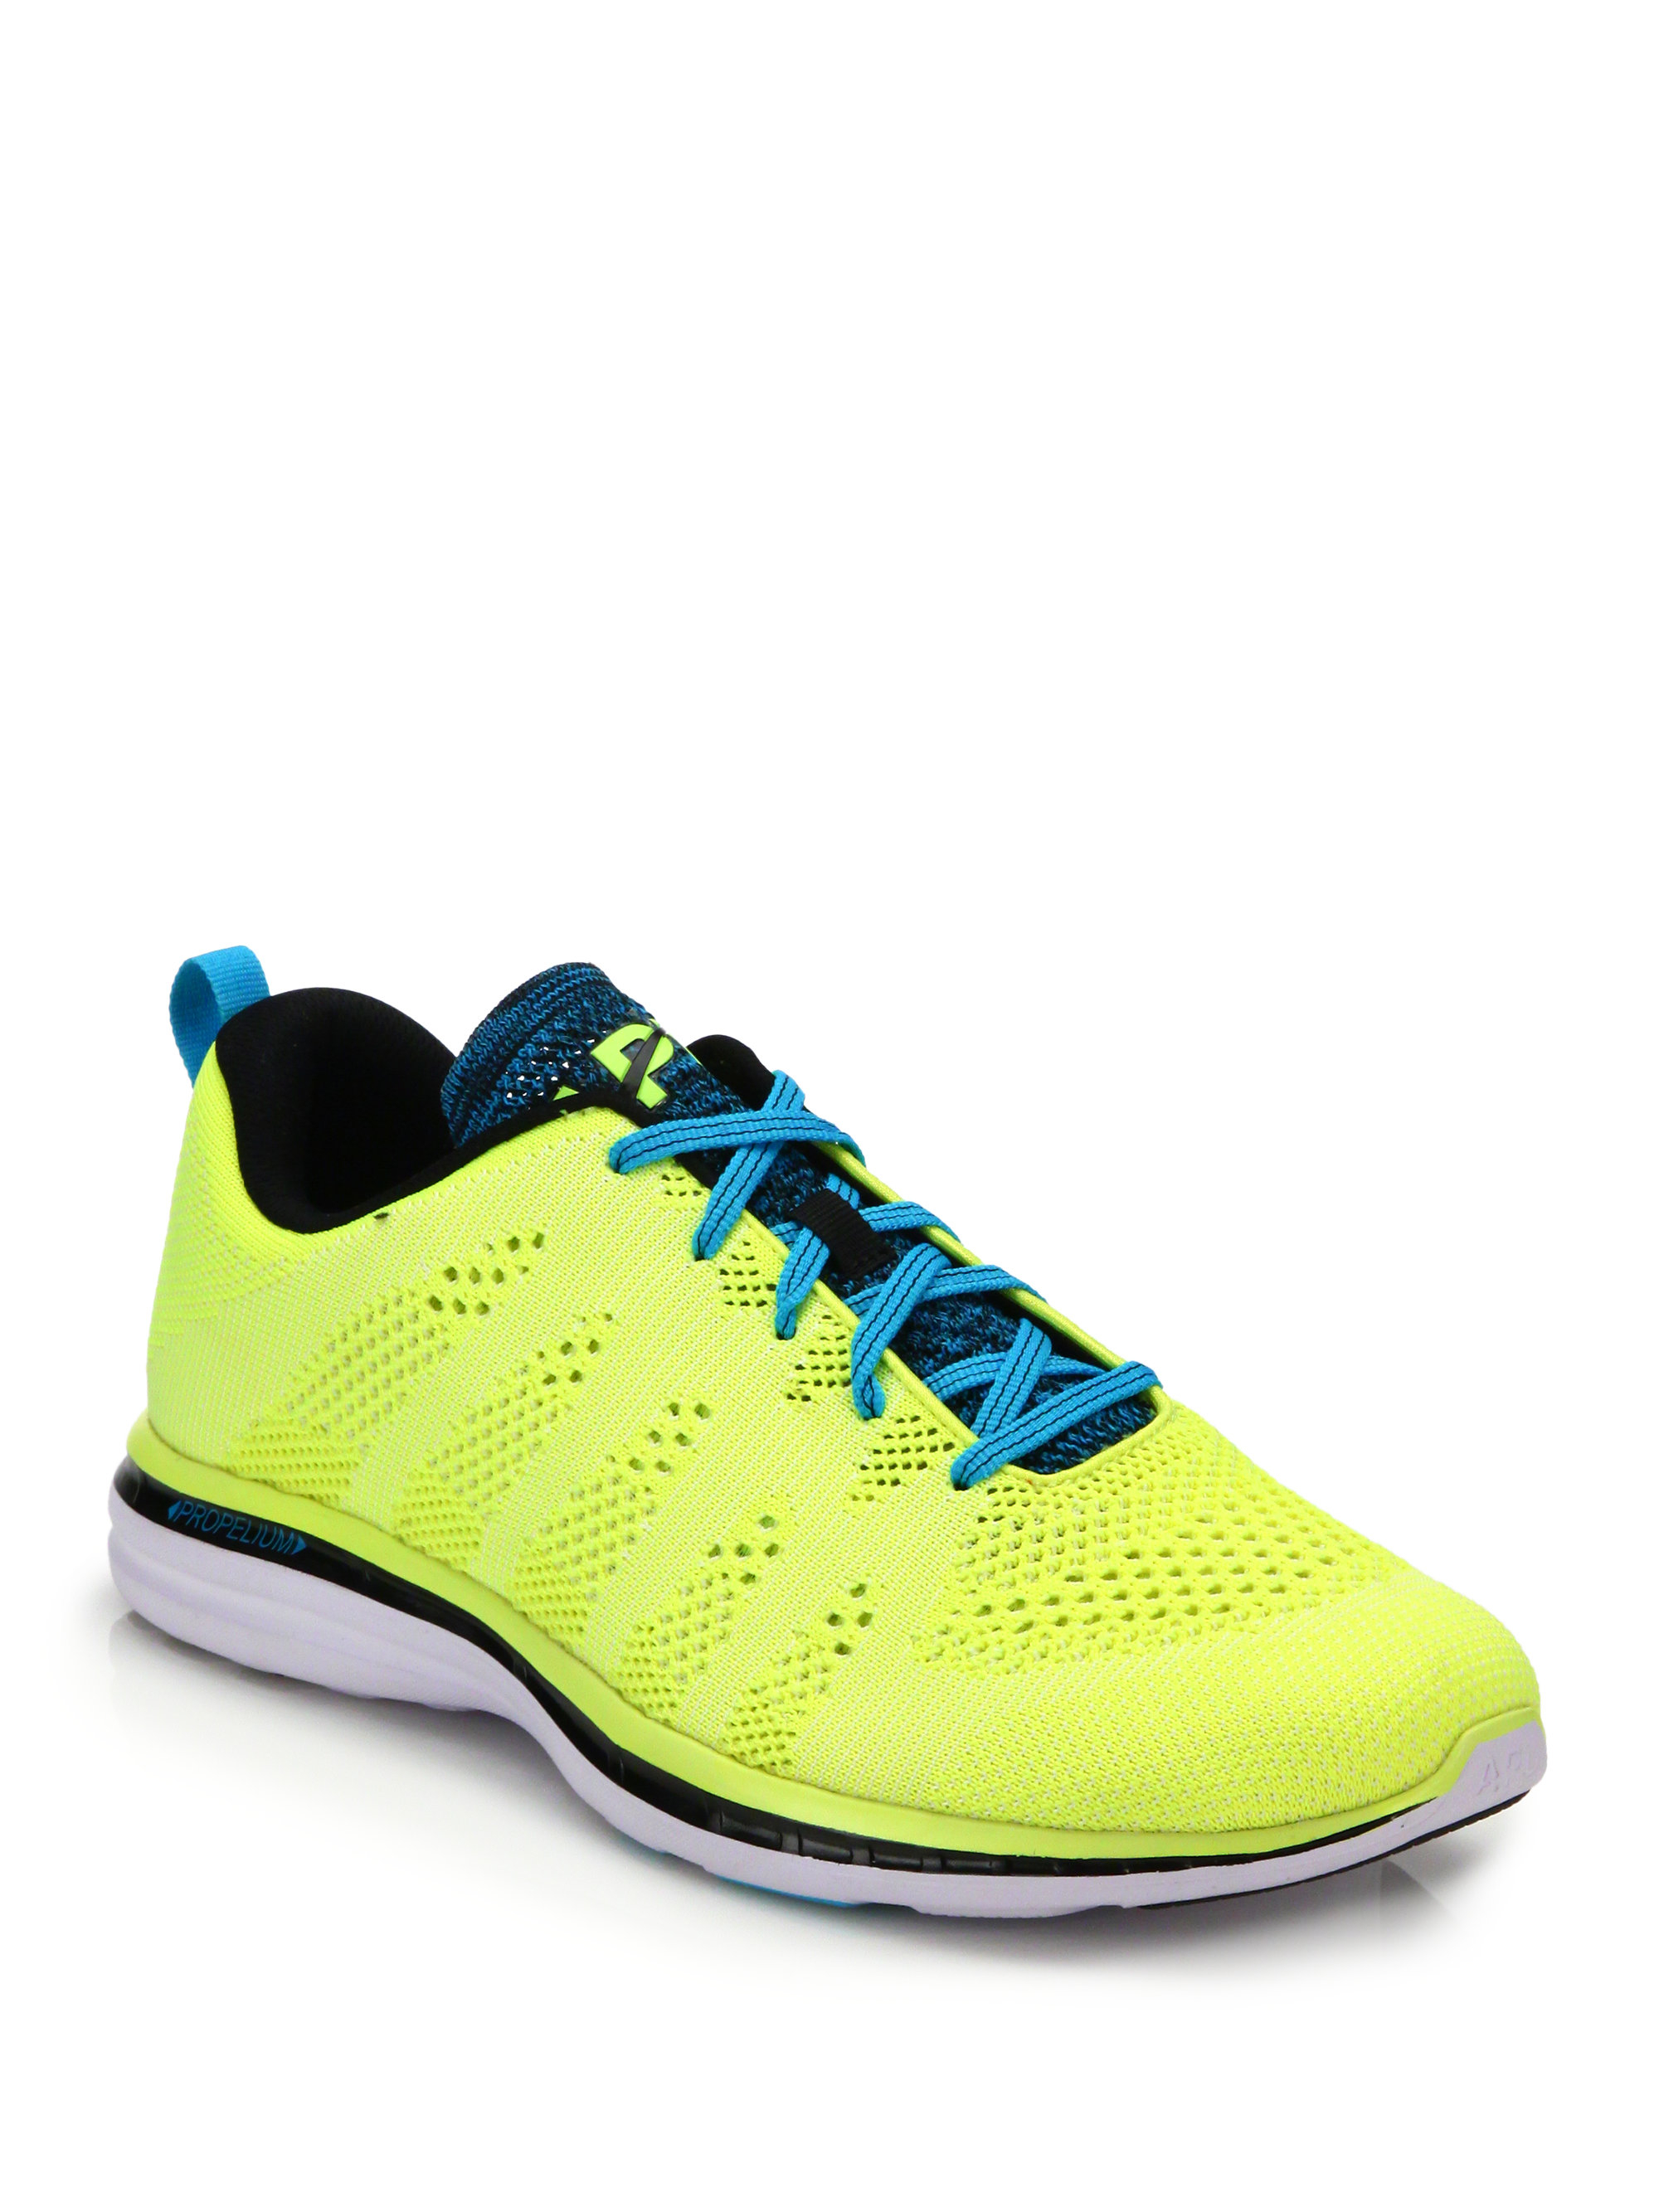 athletic propulsion labs techloom pro glow woven low top